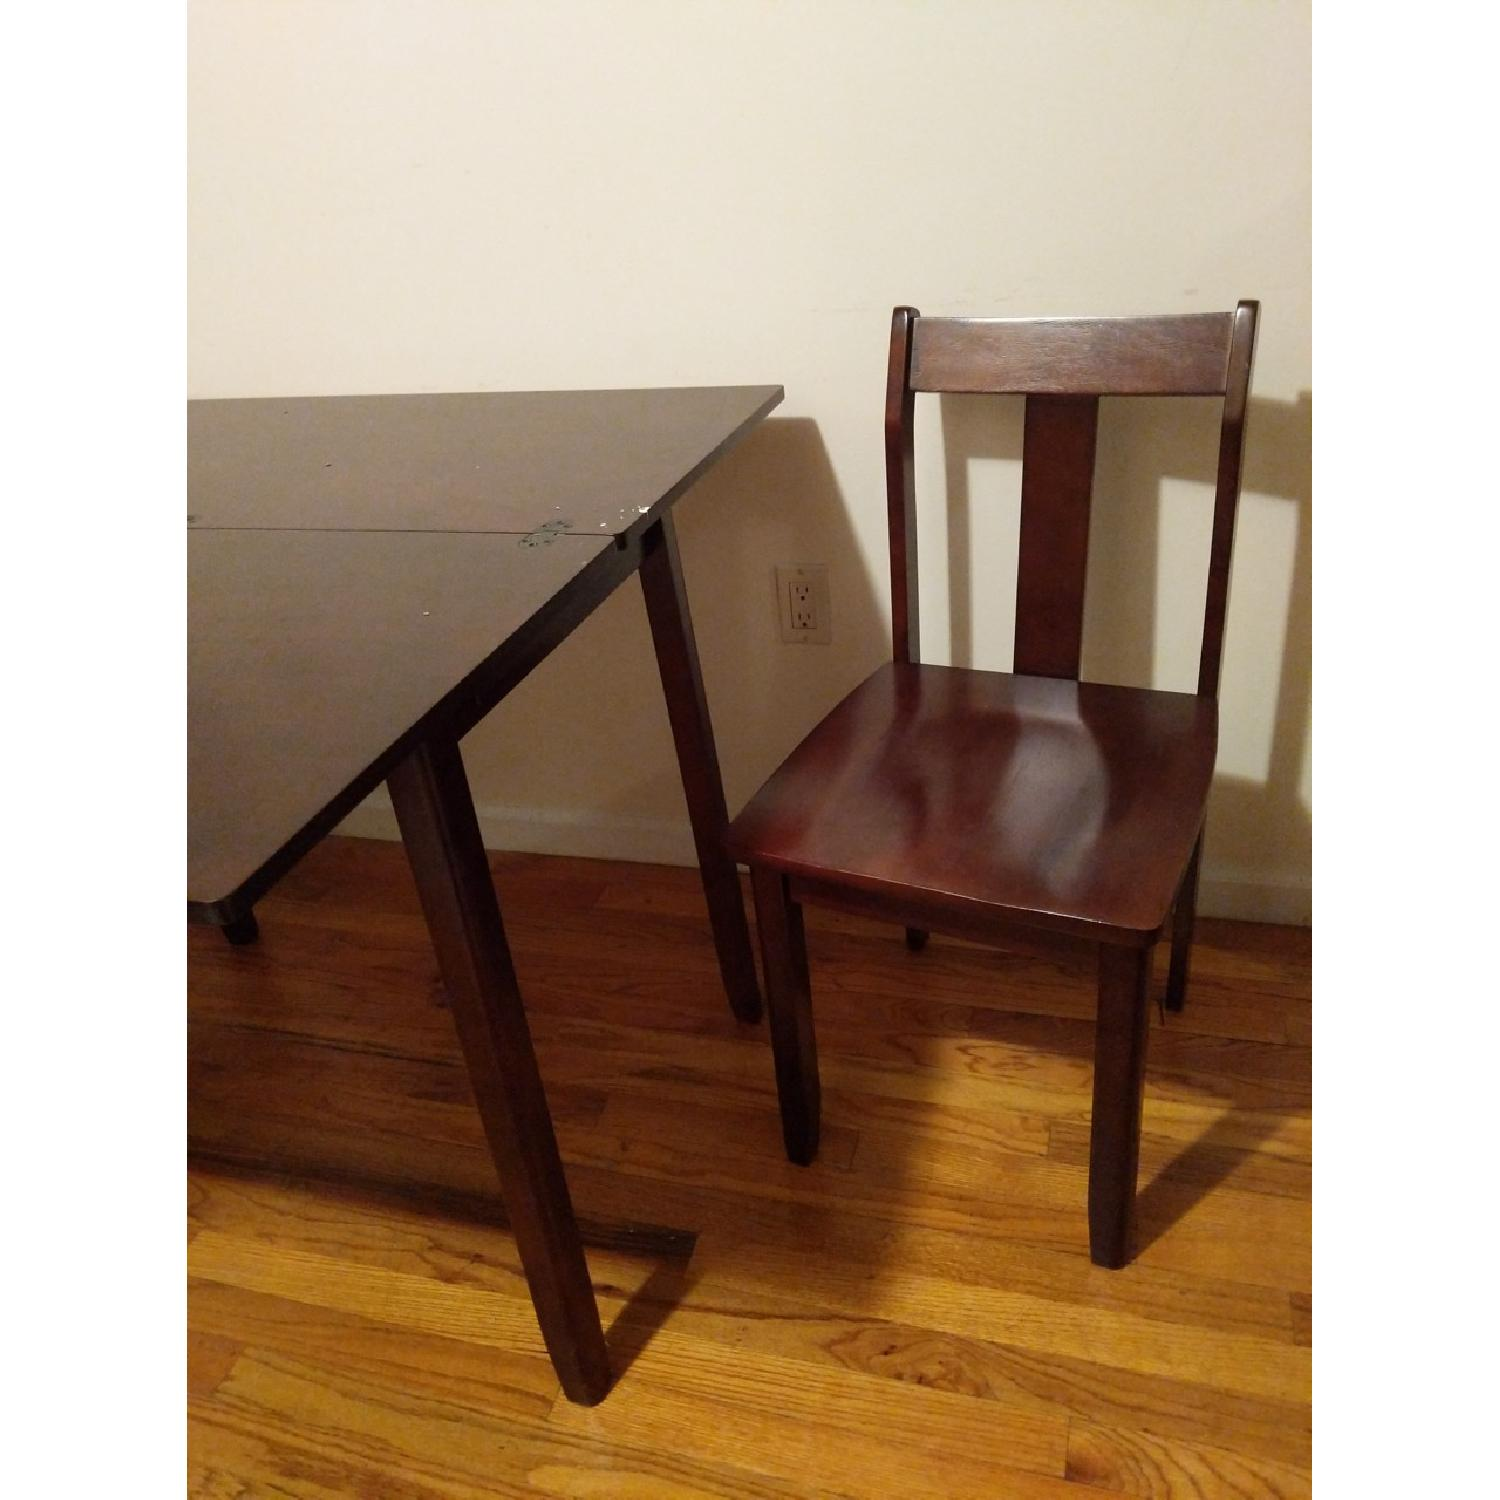 Expandable Brown Dining Table w/ 2 Chairs-1